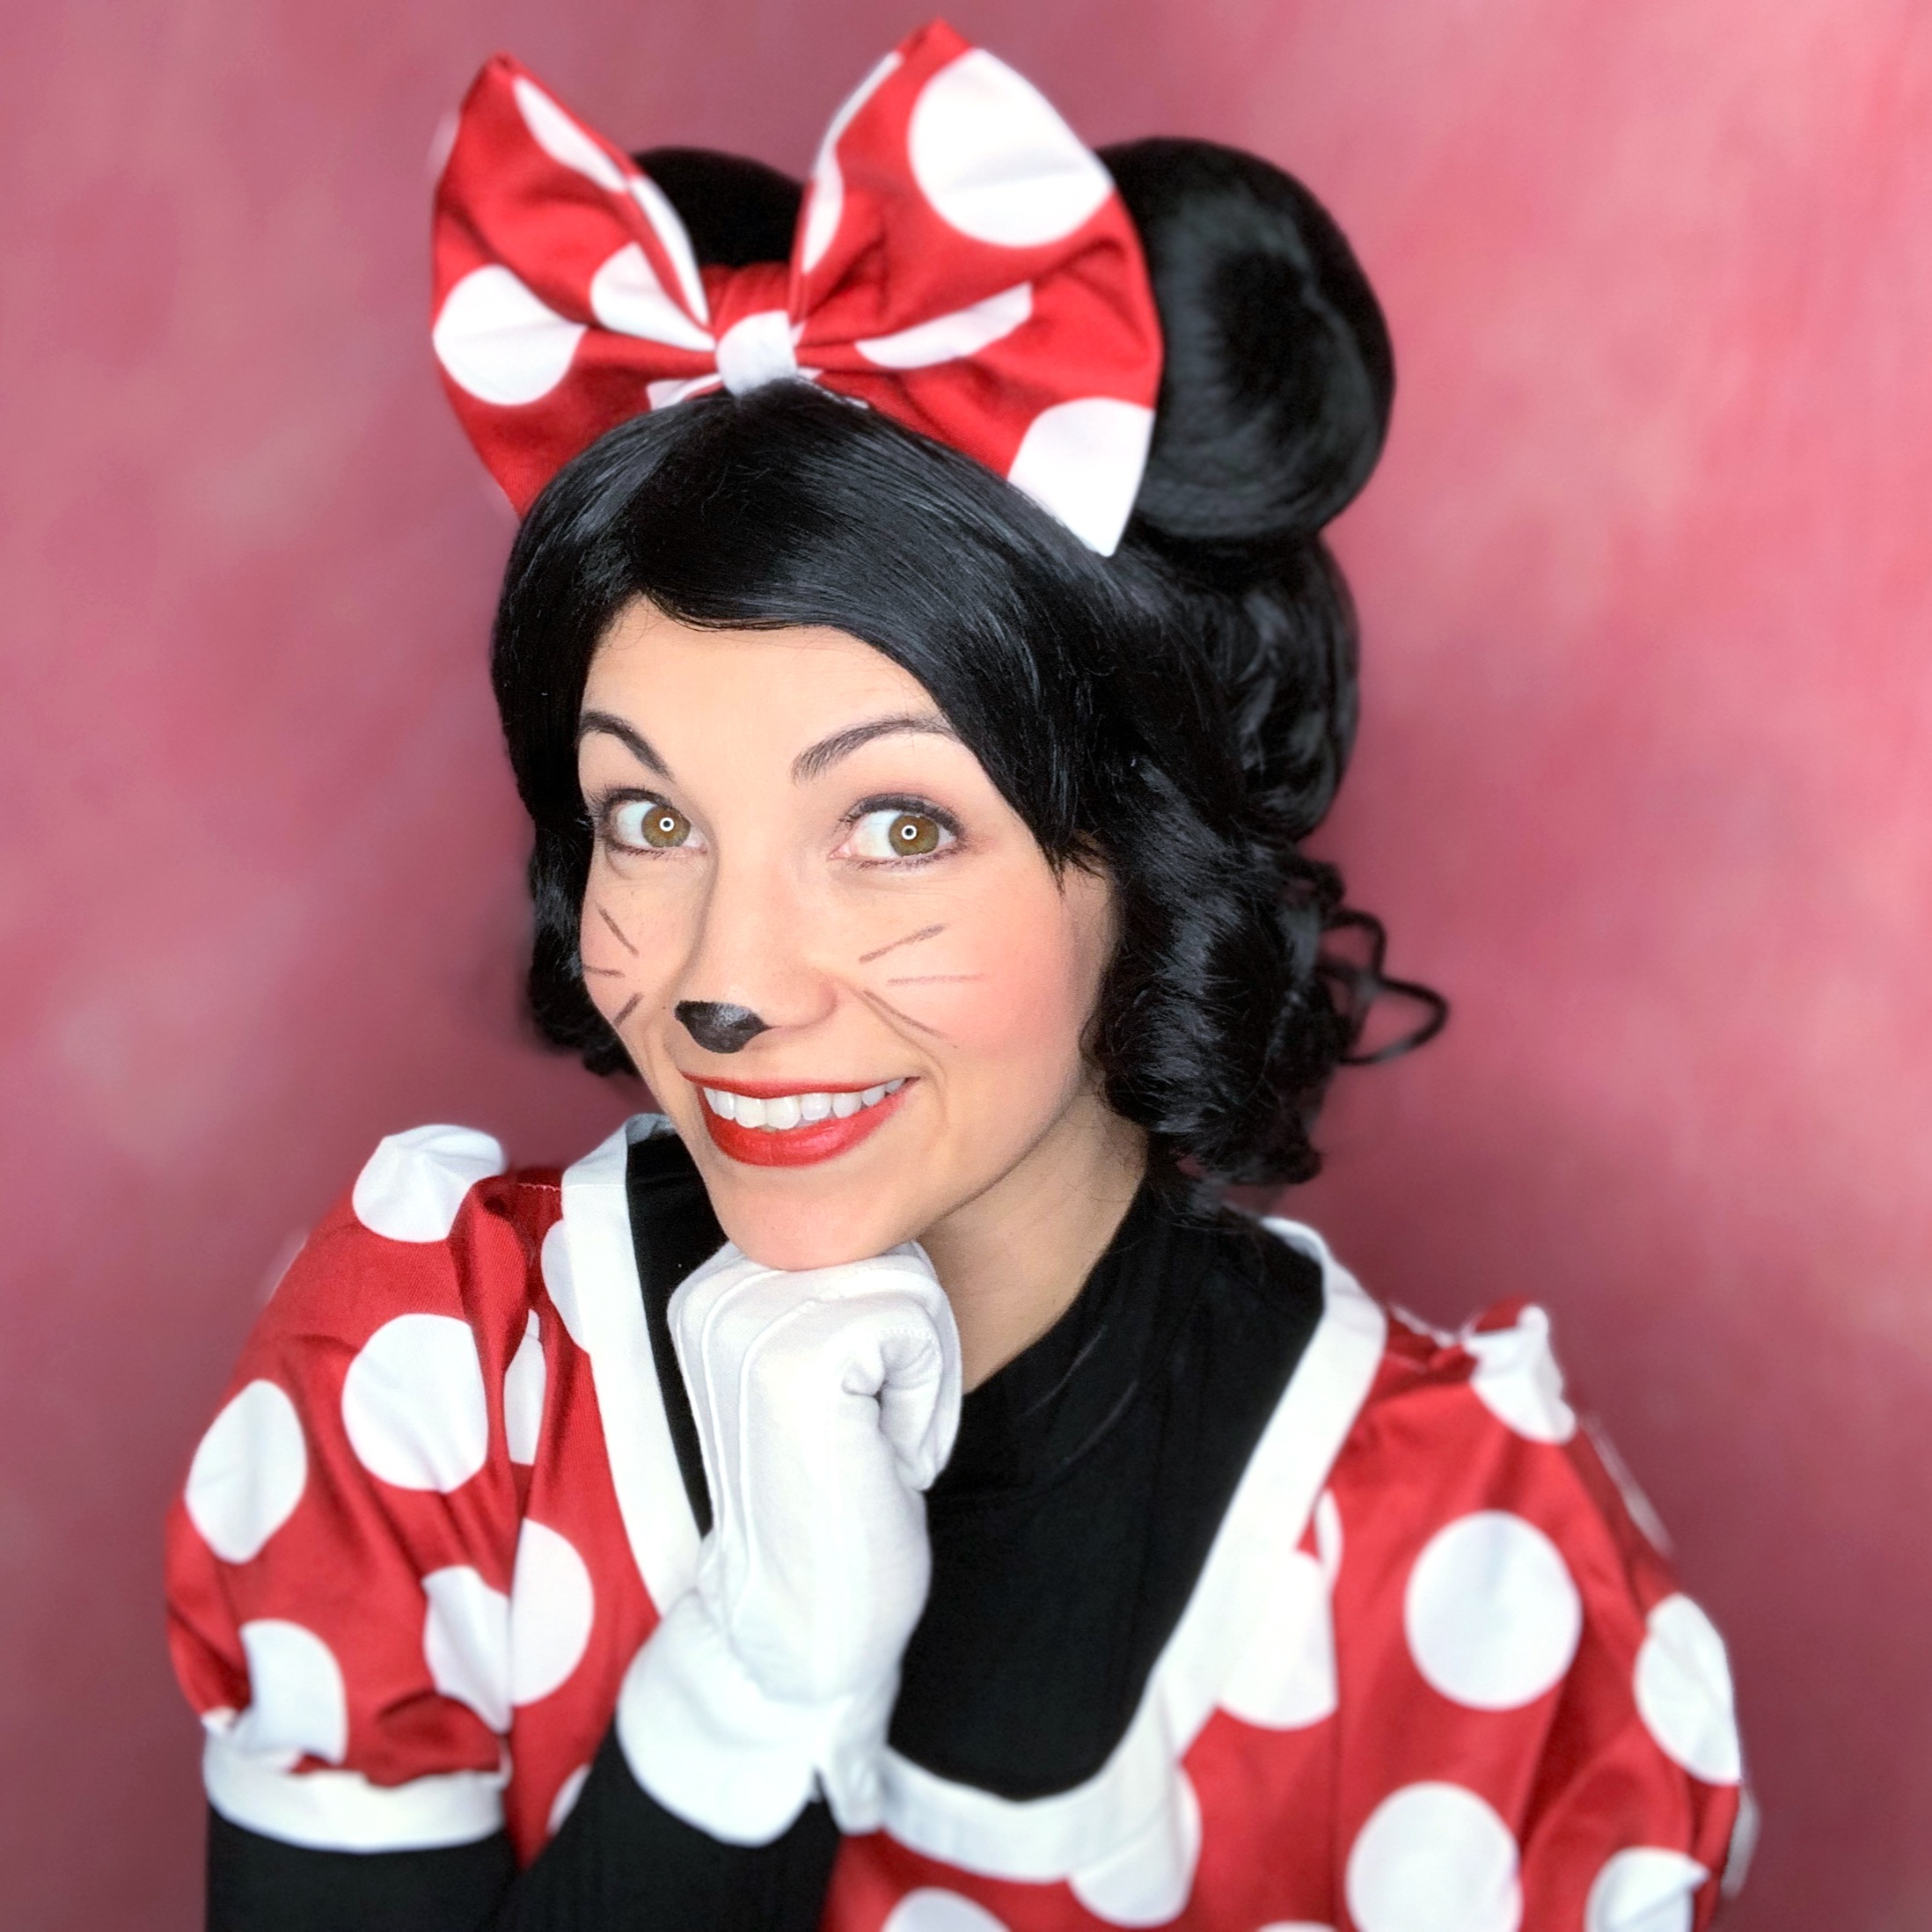 Andy as Mouse Girl